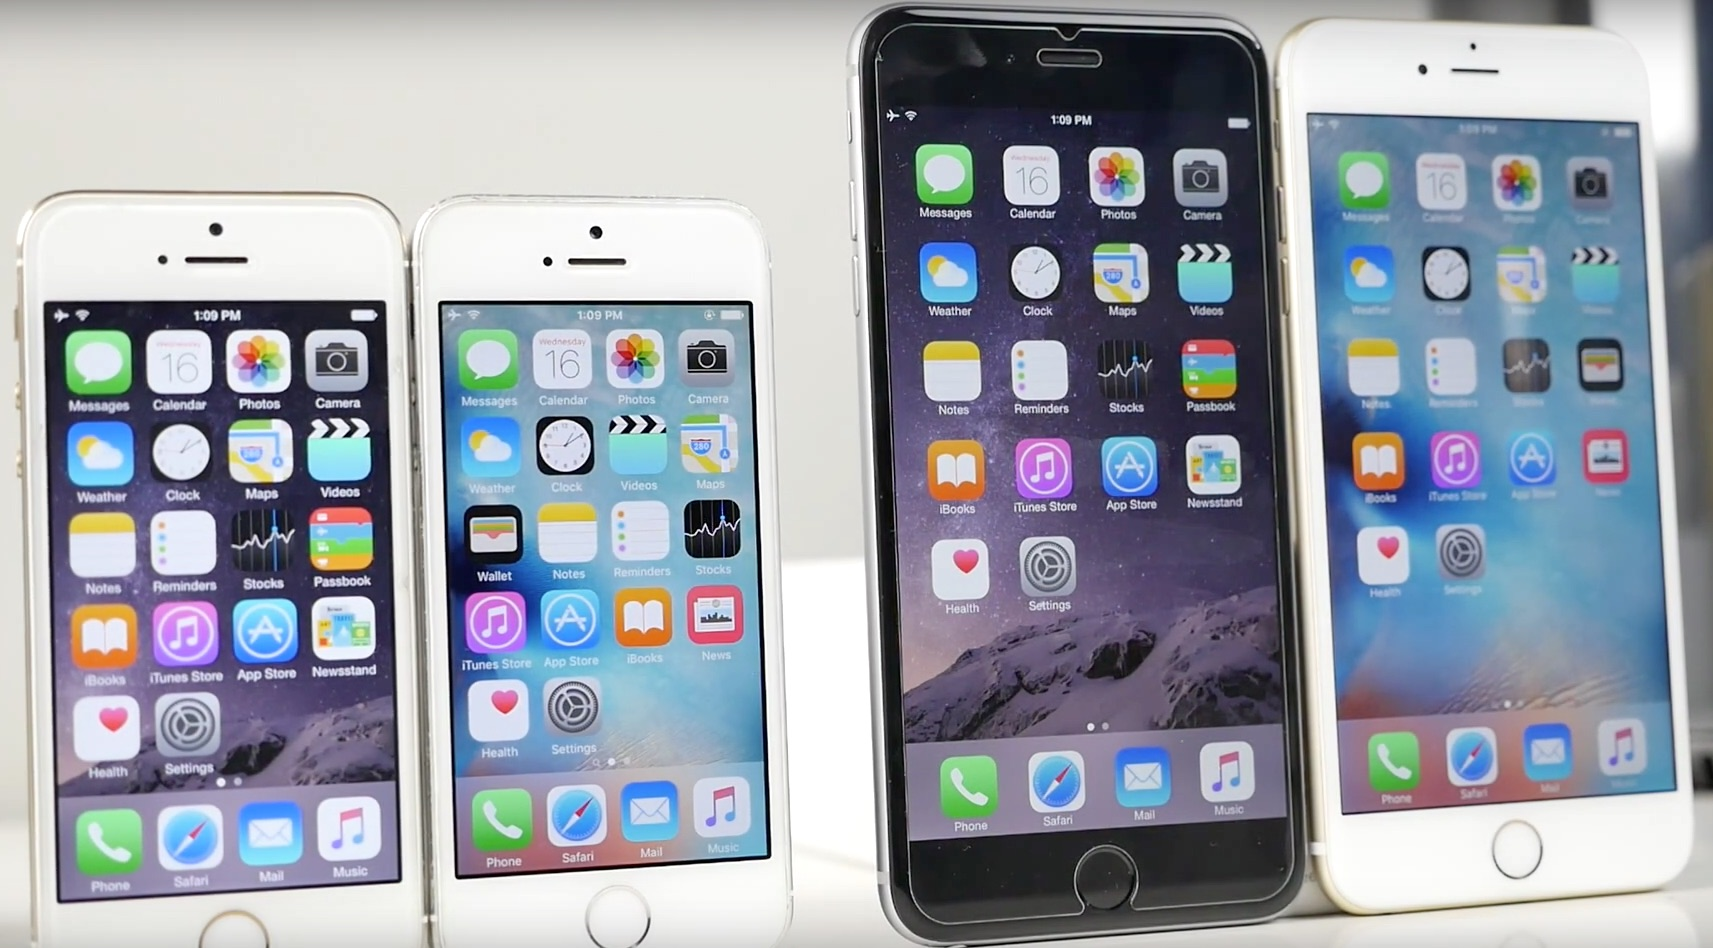 Is Apple's iOS 9 snappier than iOS 8.4.1?